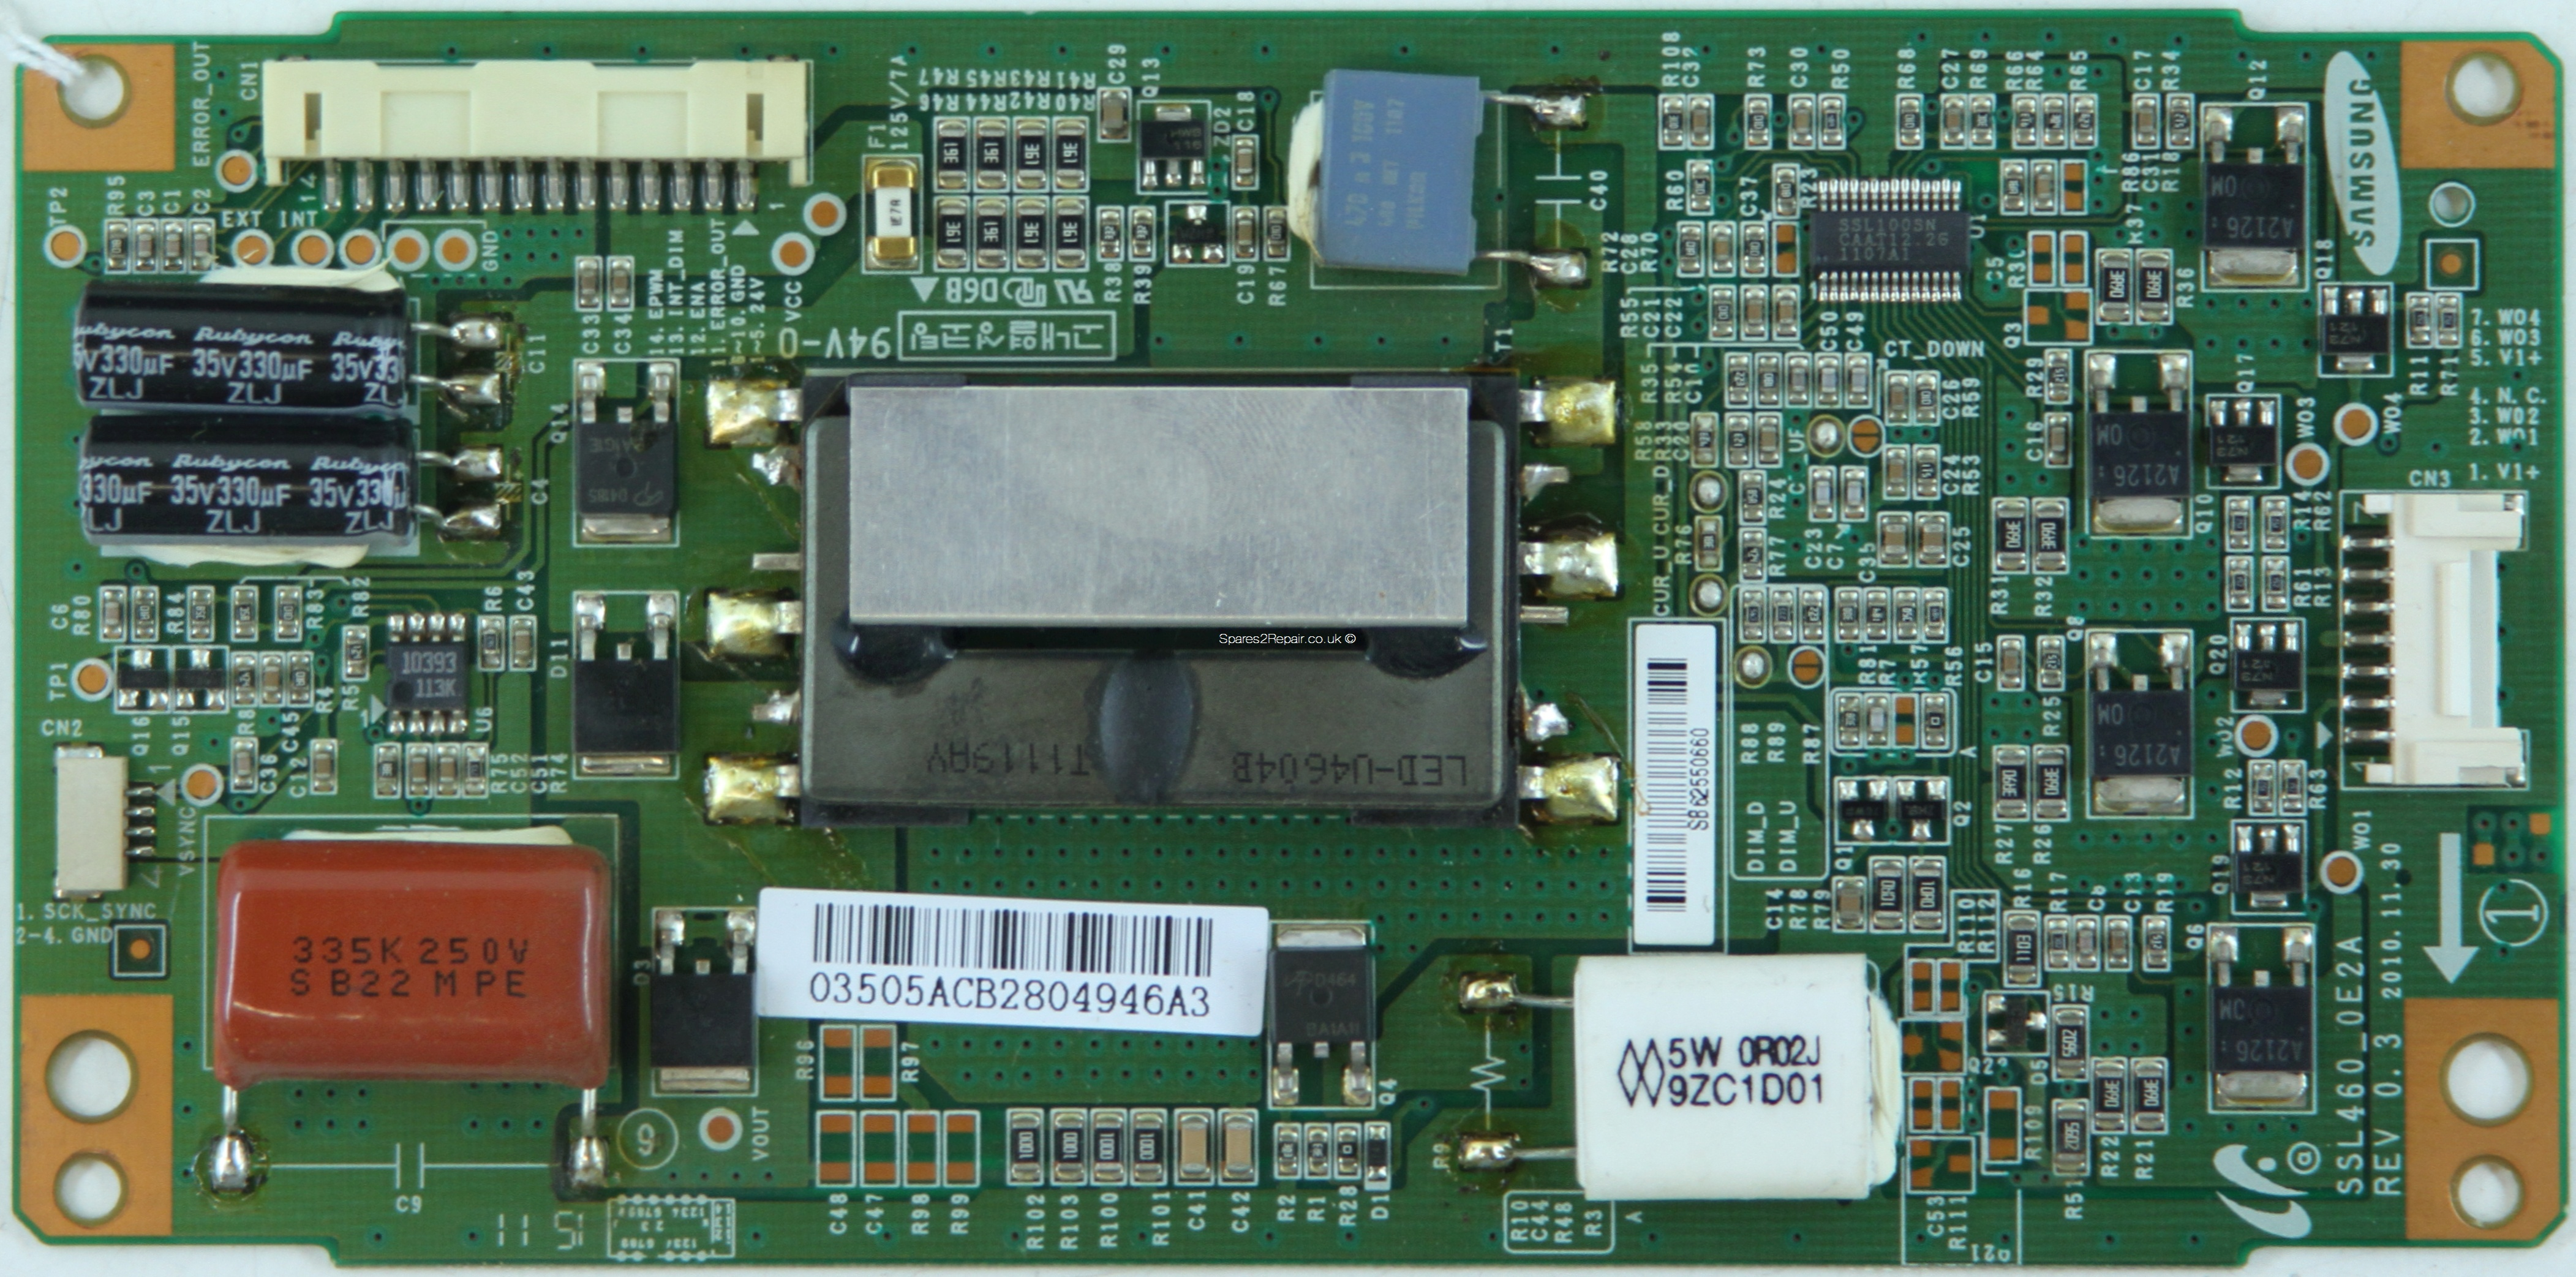 HiSense 46K360M - LED Driver Board - LJ97-03505A - REV 0.3 - SSL460_0E2A